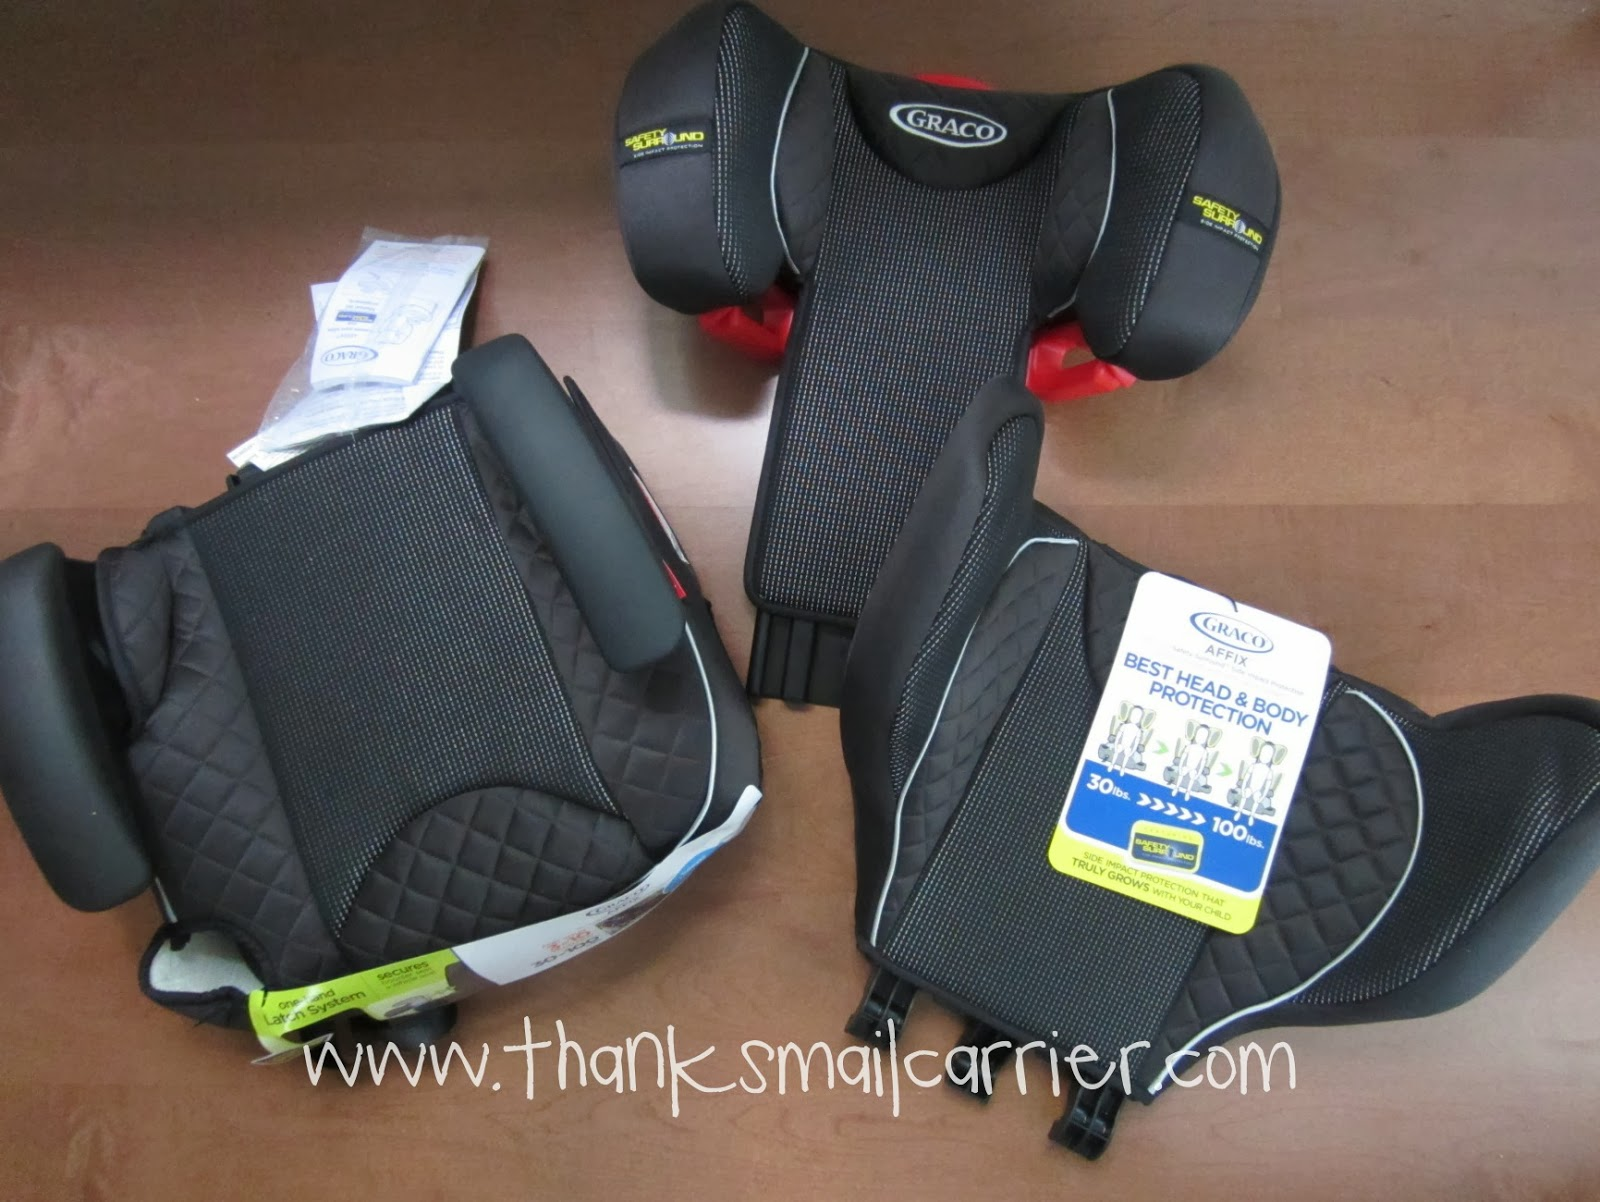 Graco booster seat assembly